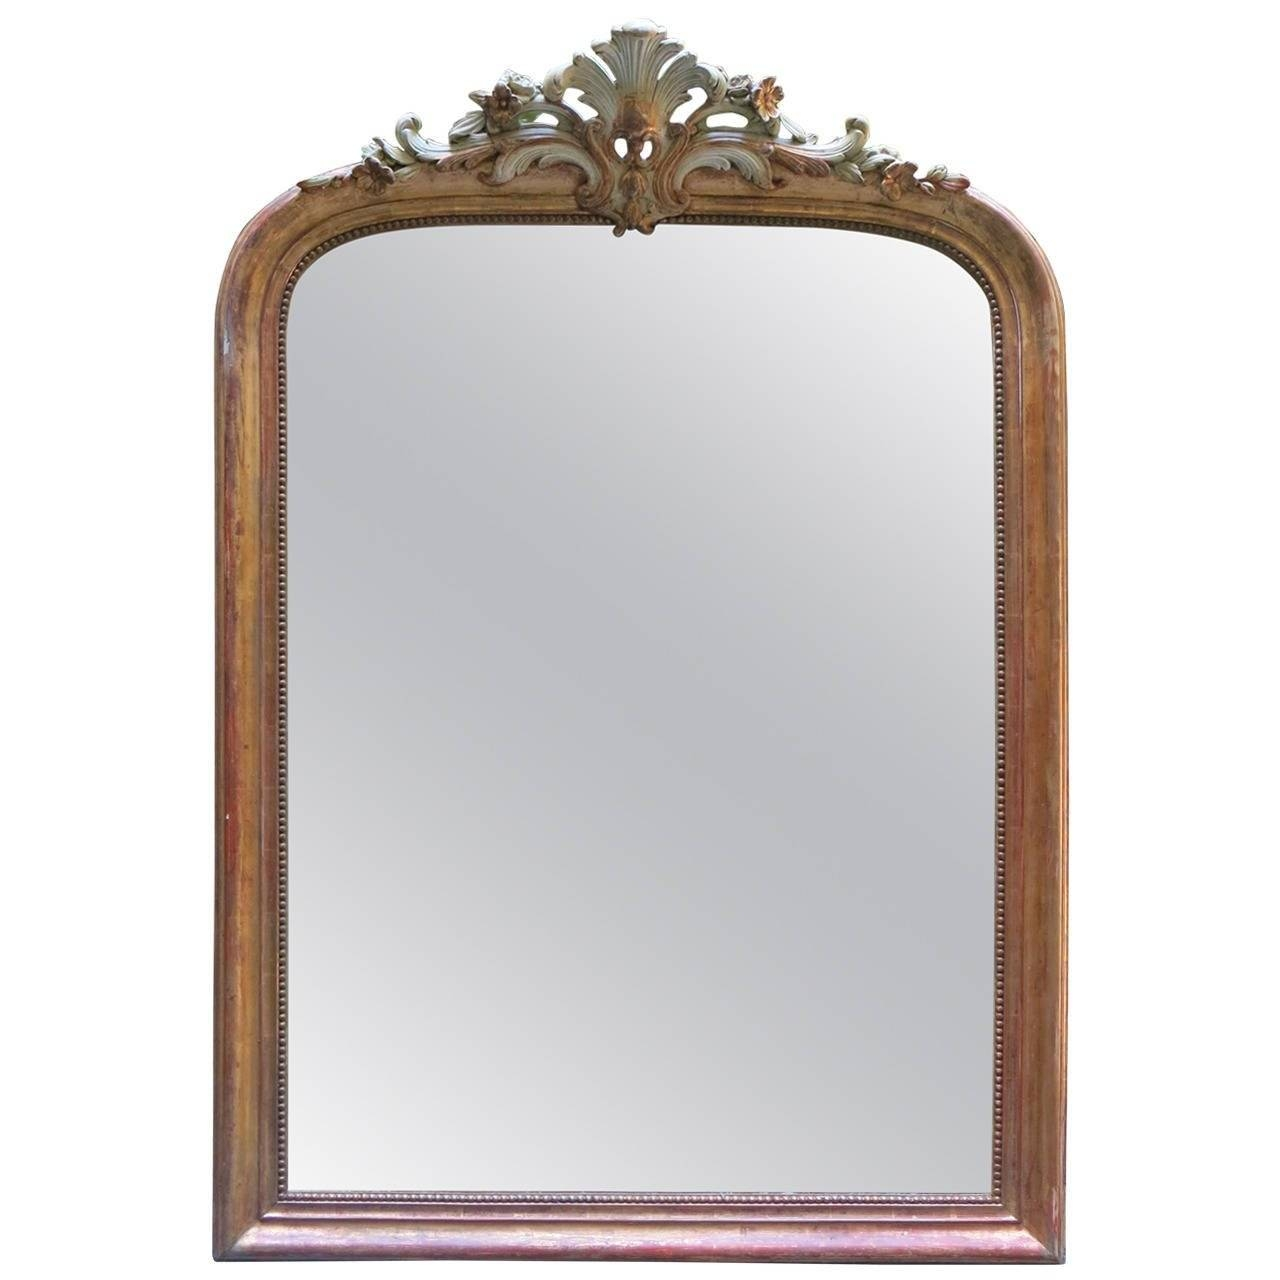 18Th Century Louis Xv Gilded Mirror With Cartouche At 1Stdibs For Antique Gilded Mirrors (View 15 of 25)